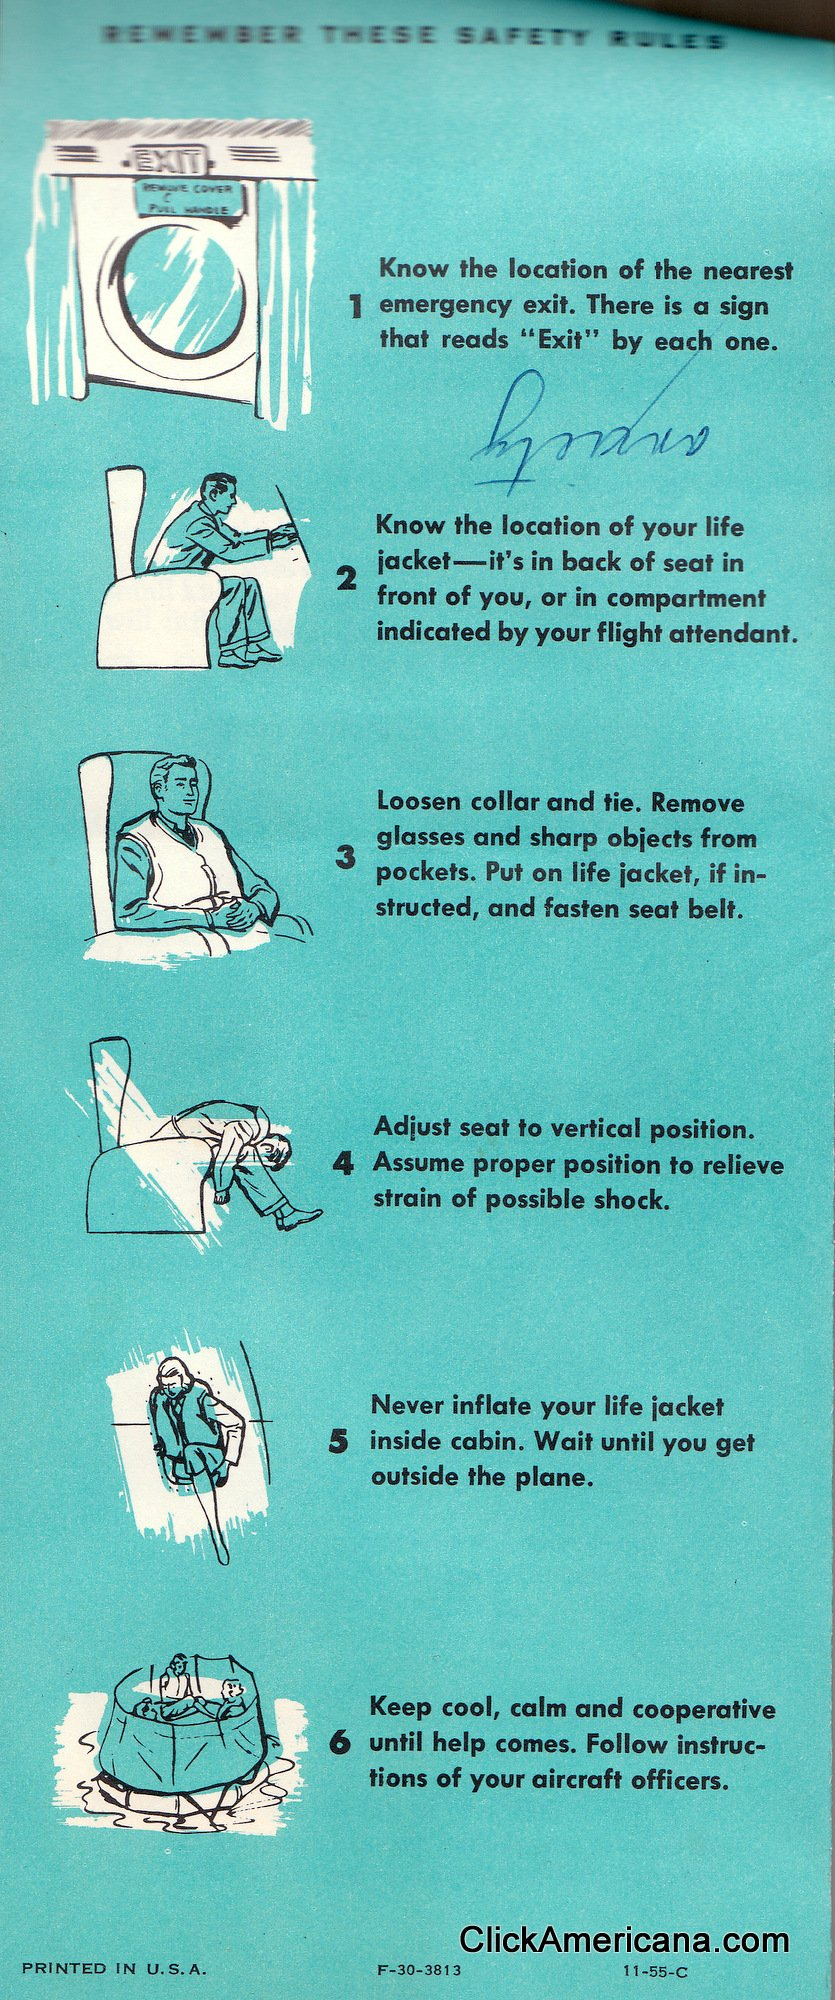 See a vintage airplane safety card from the '50s